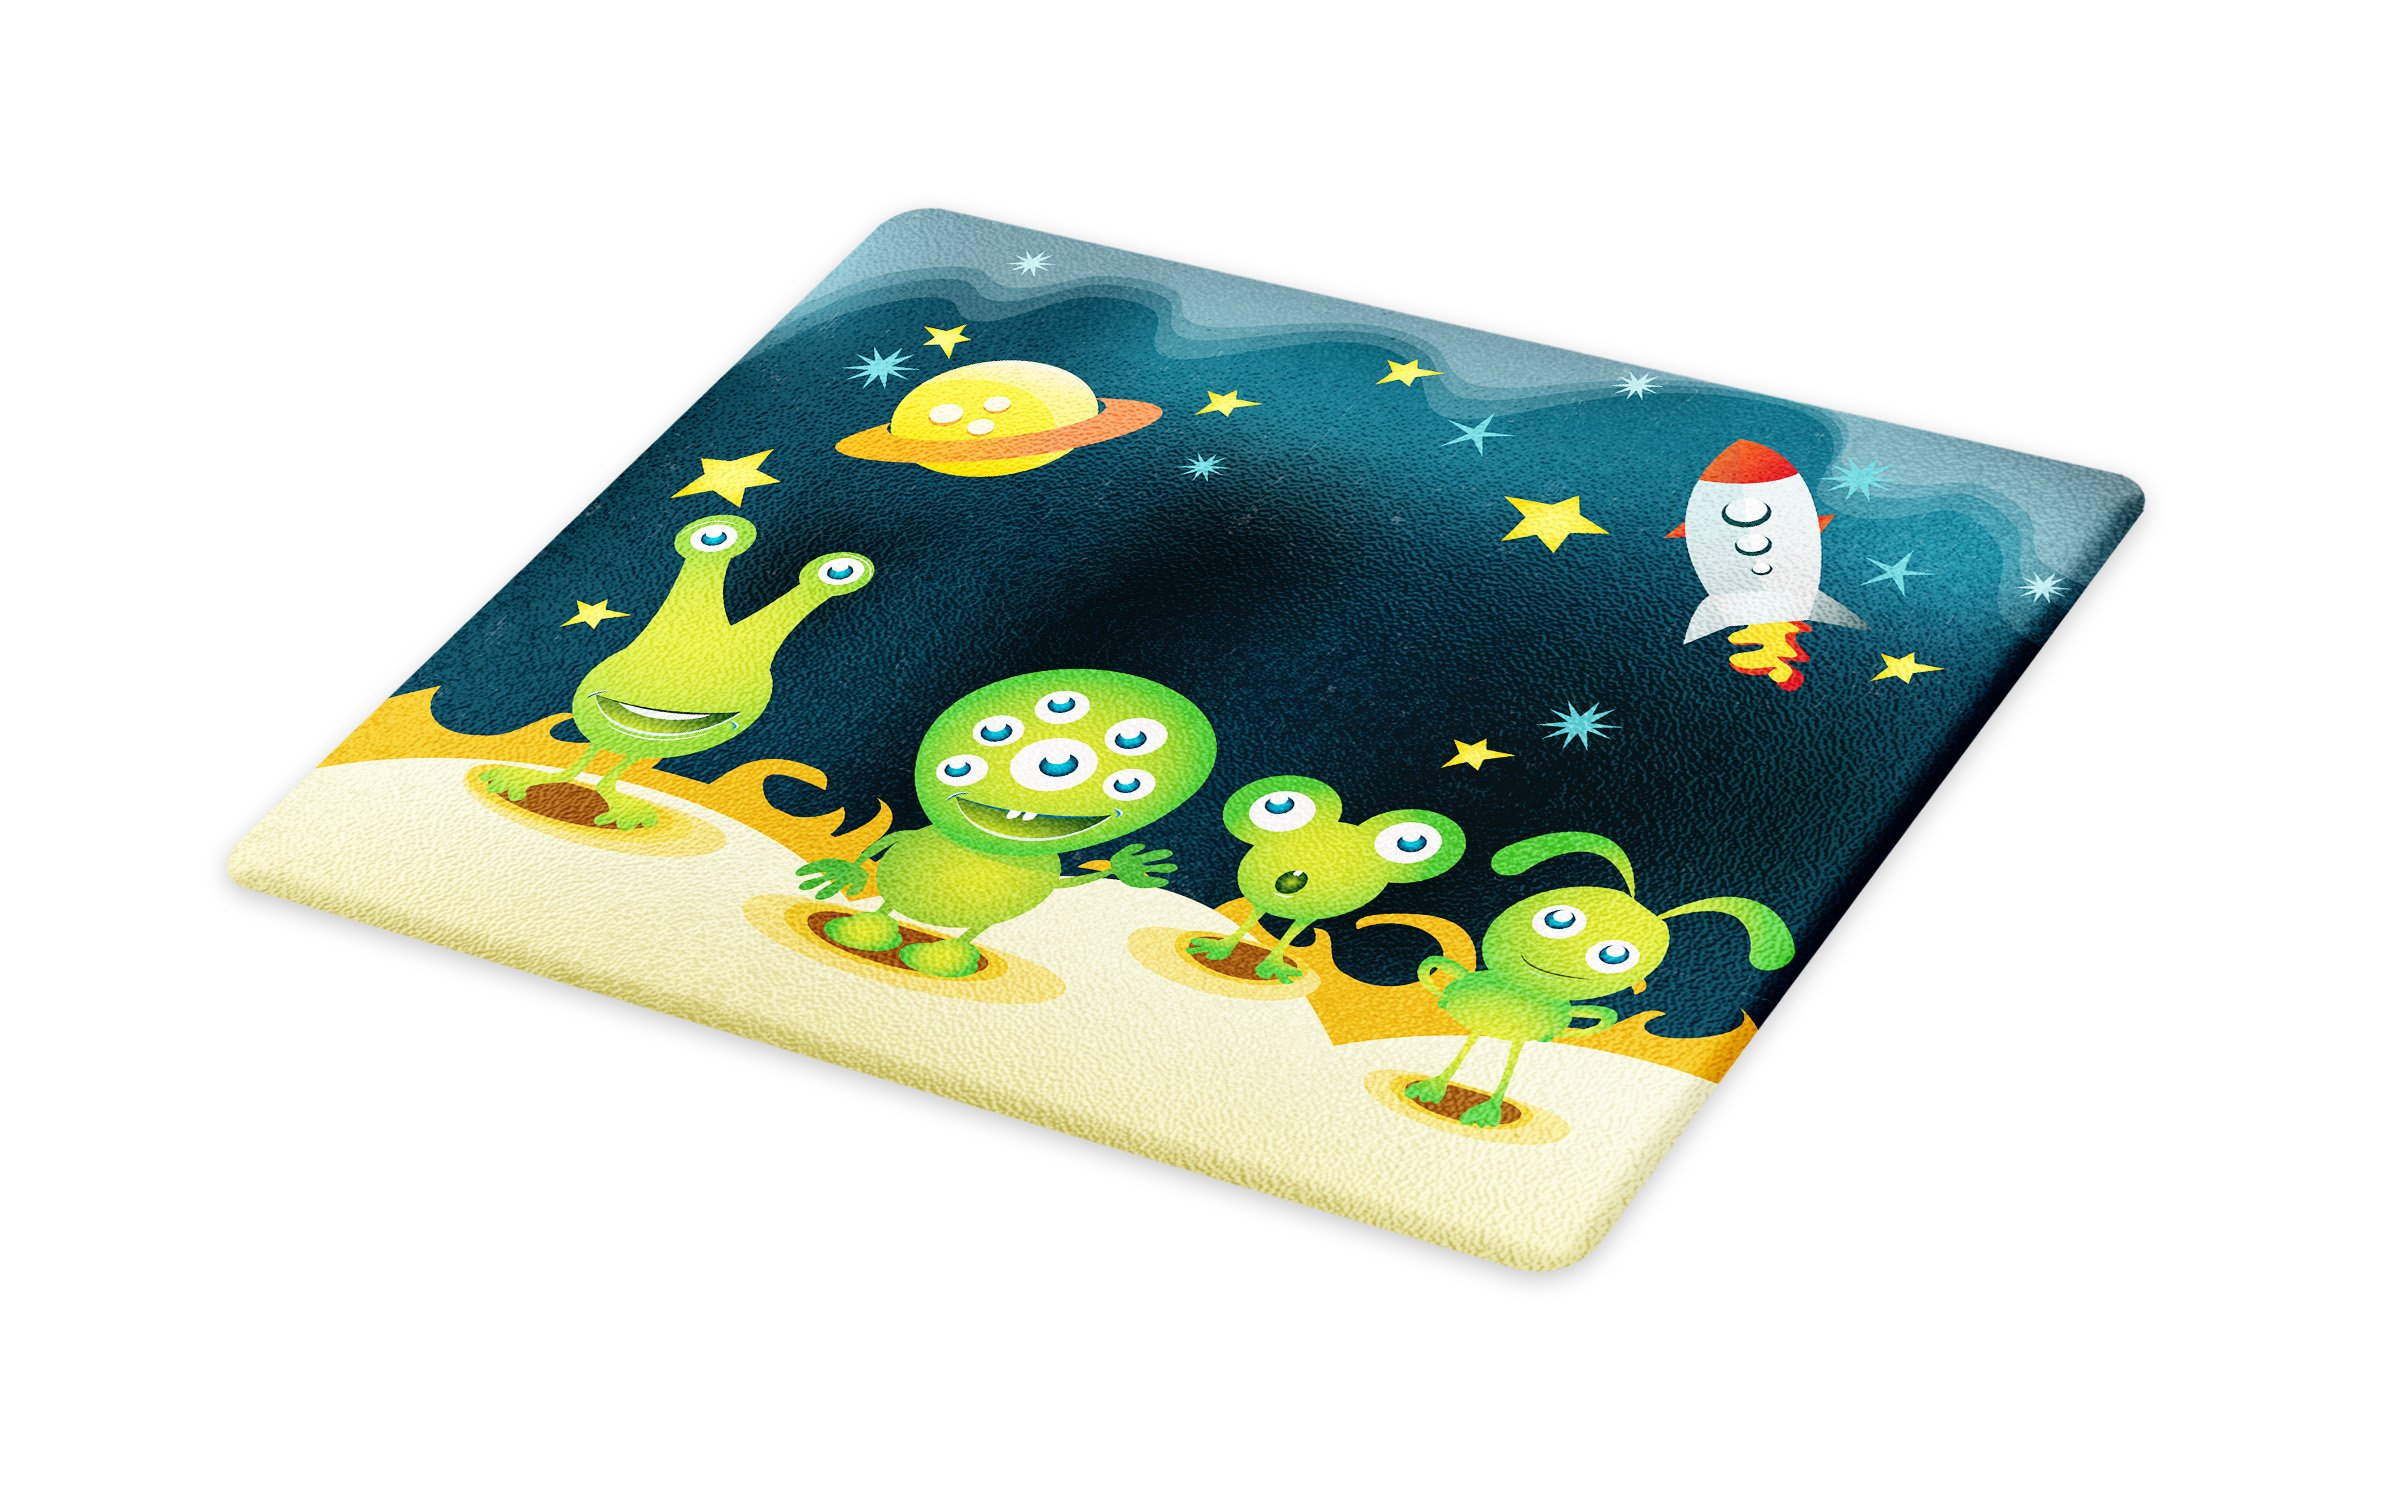 Lunarable Outer Space Cutting Board, Aliens on Mars Surface Galaxy Solar System Objects Orbit Rockets Humor Design, Decorative Tempered Glass Cutting and Serving Board, Large Size, Multicolor